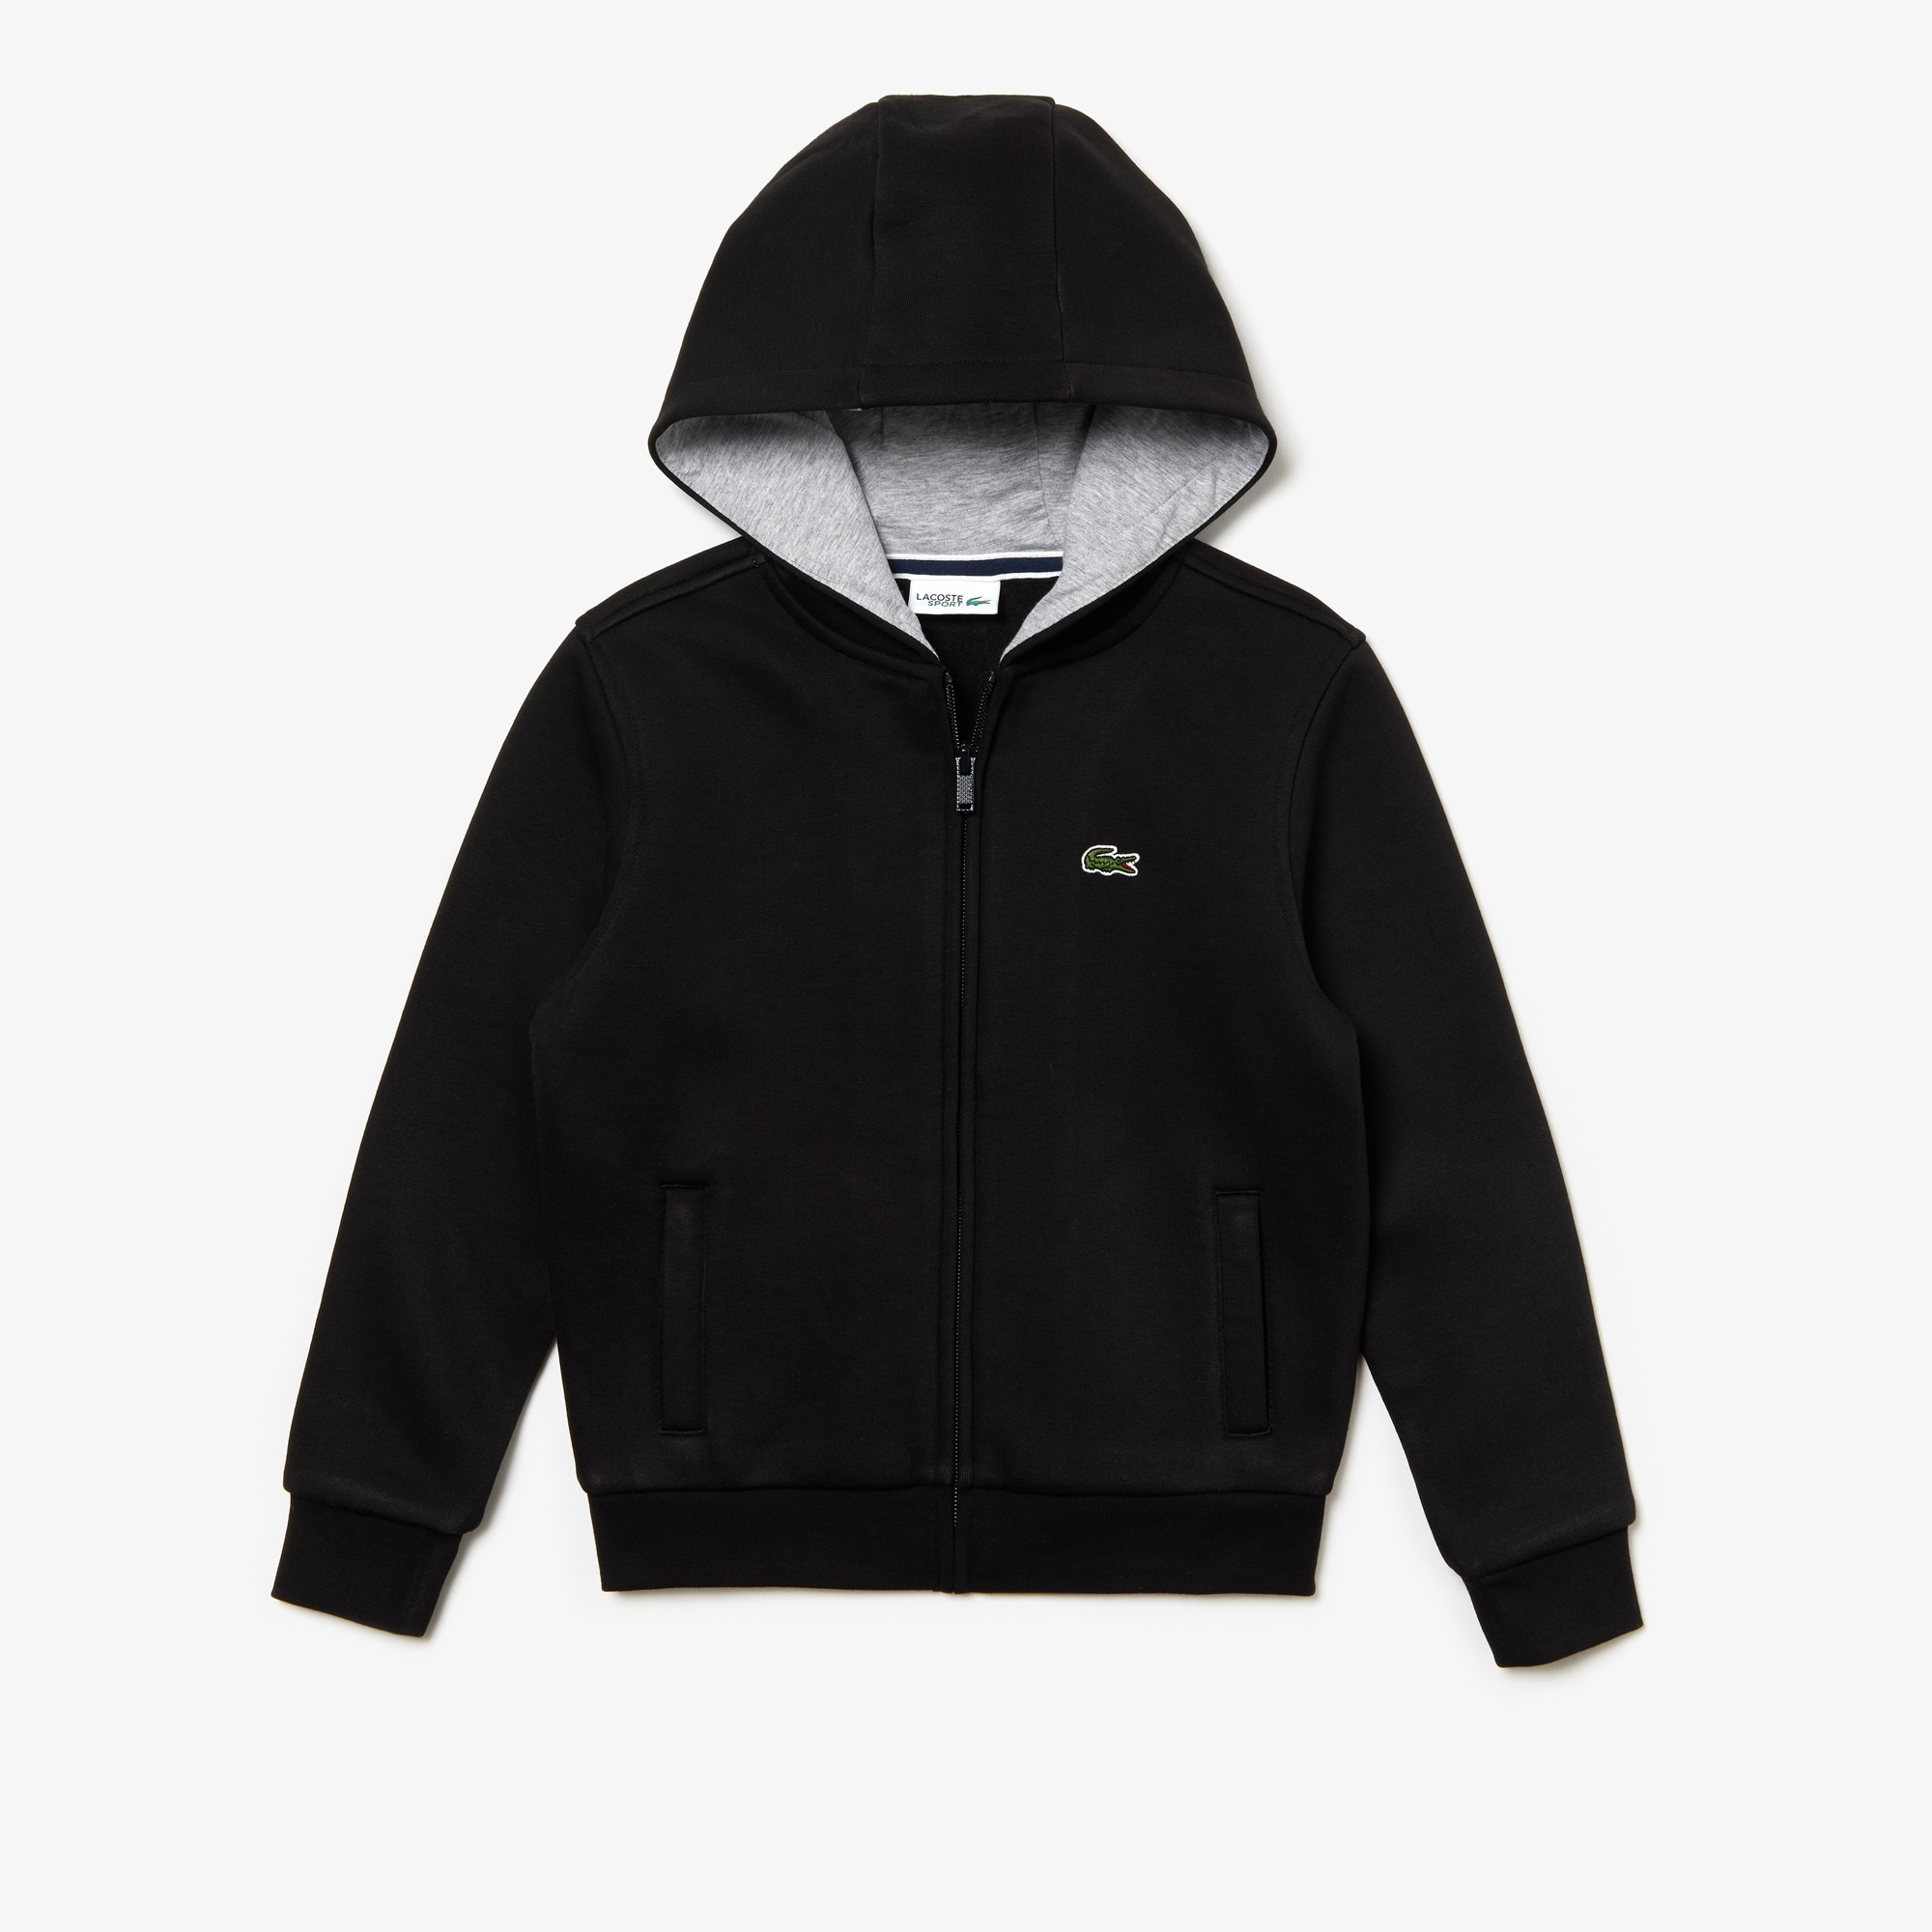 97aa9a4270 Collection Enfant | LACOSTE